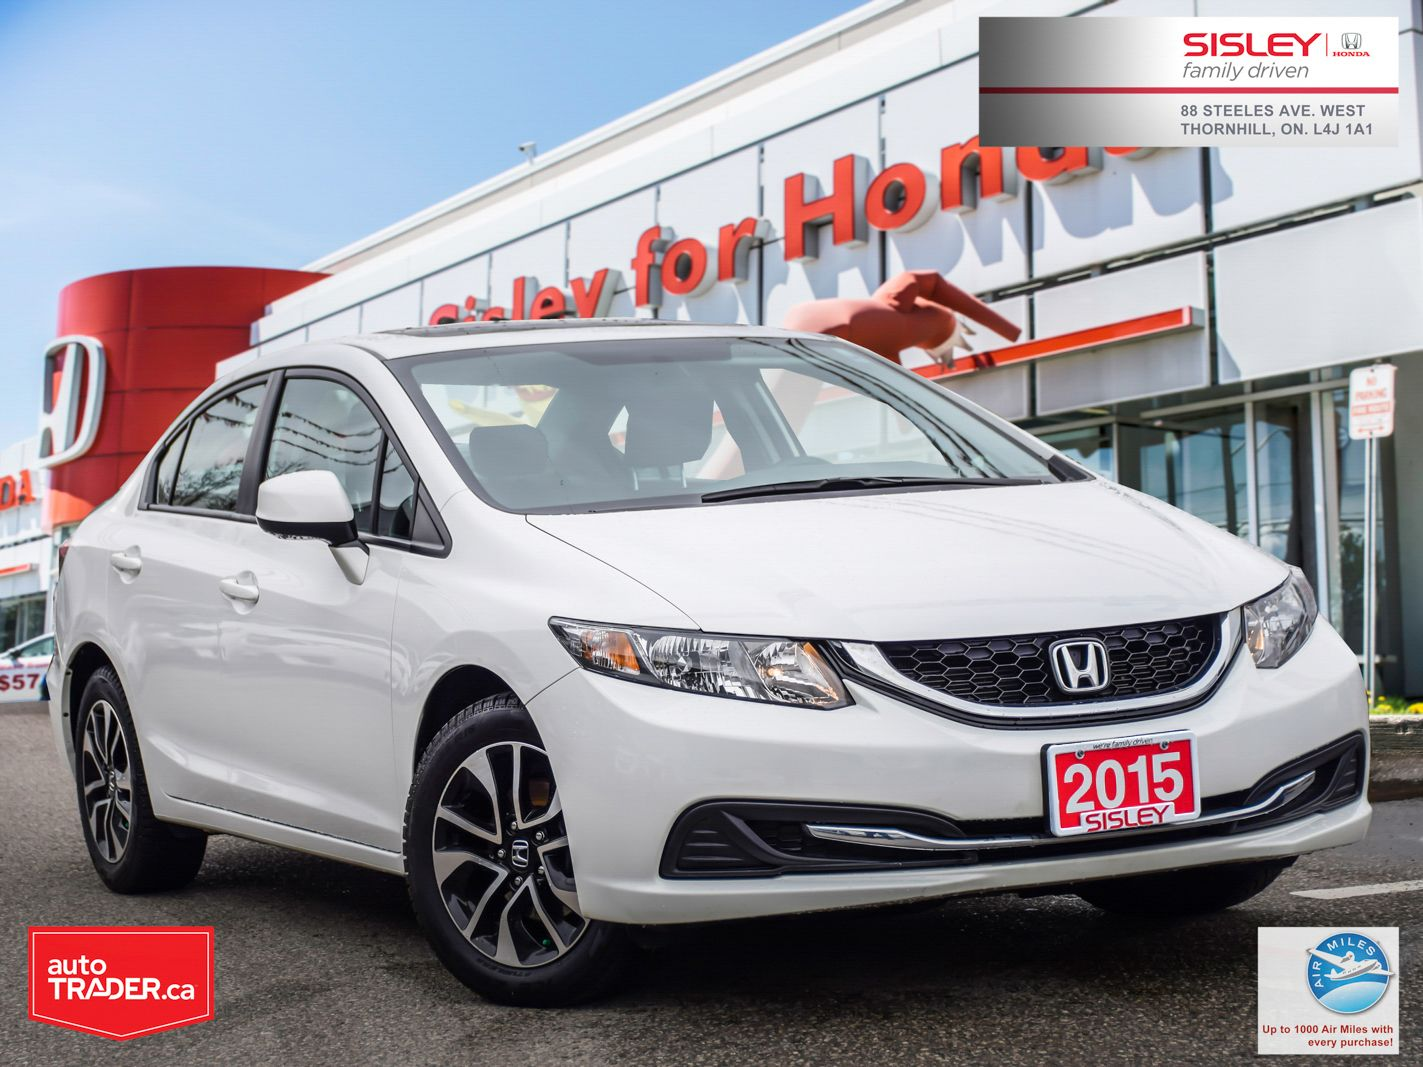 2015 Honda Civic Sedan Image